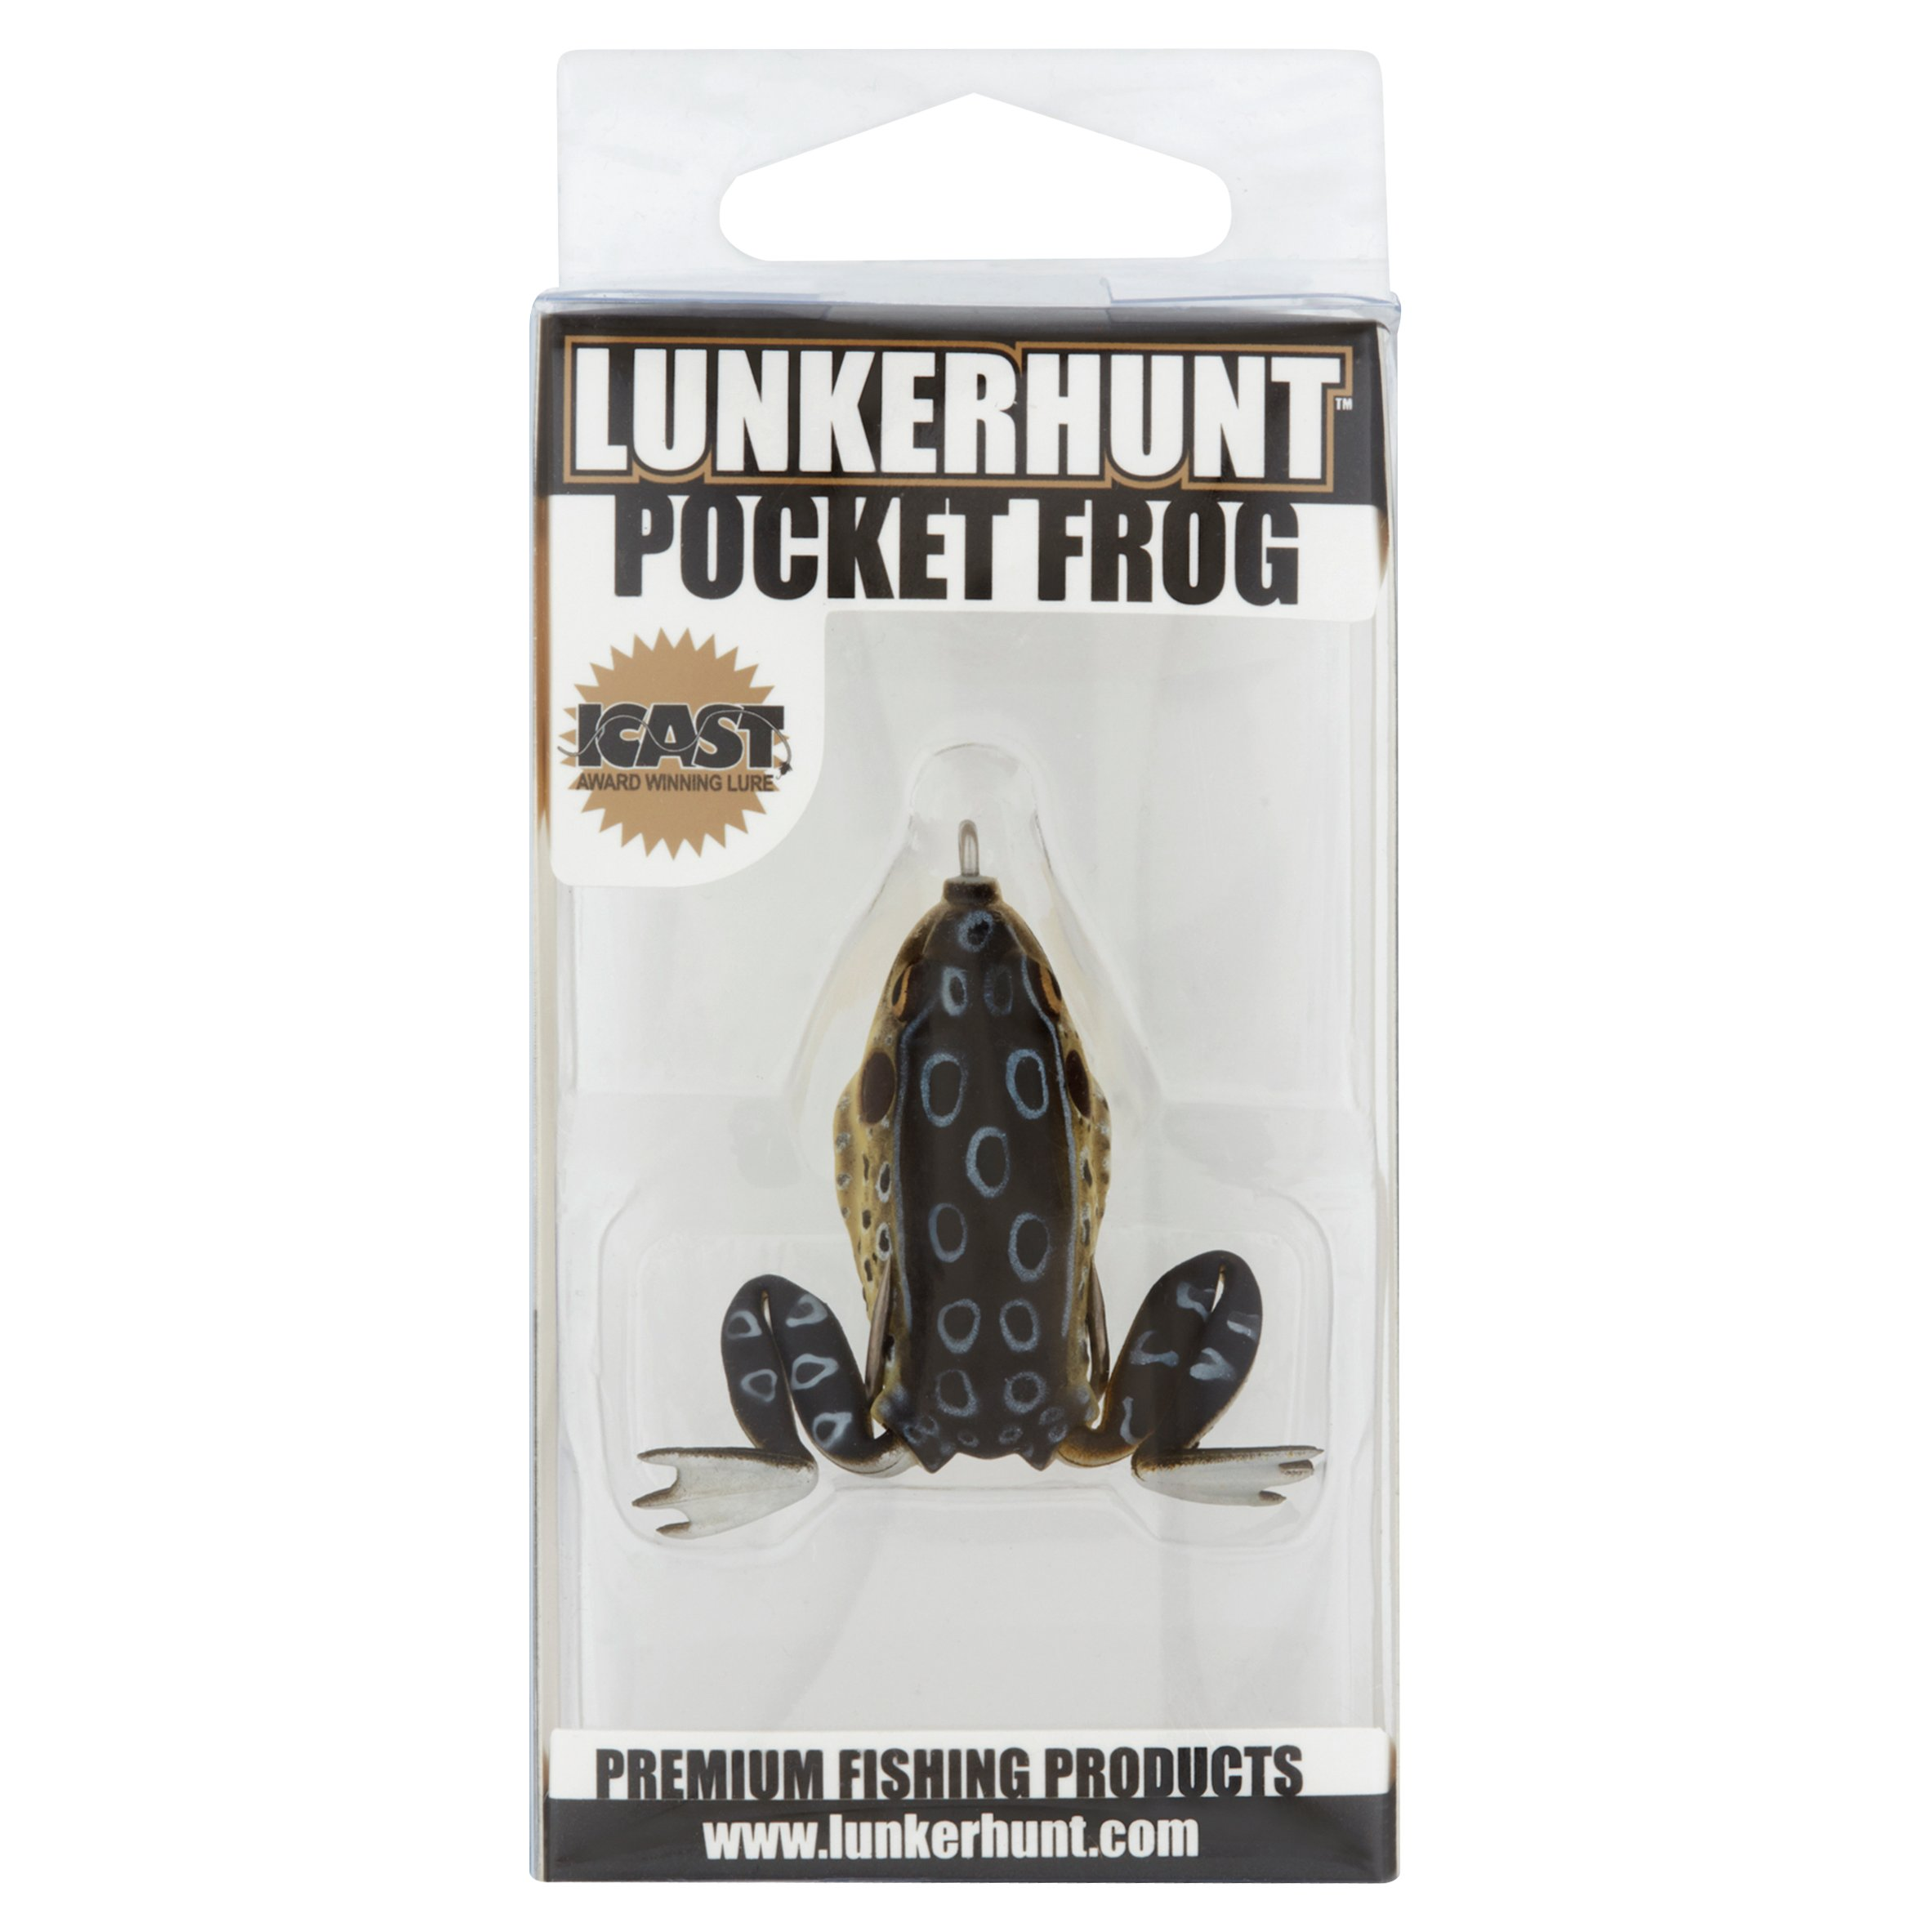 Lunkerhunt Croaker Pocket Frog